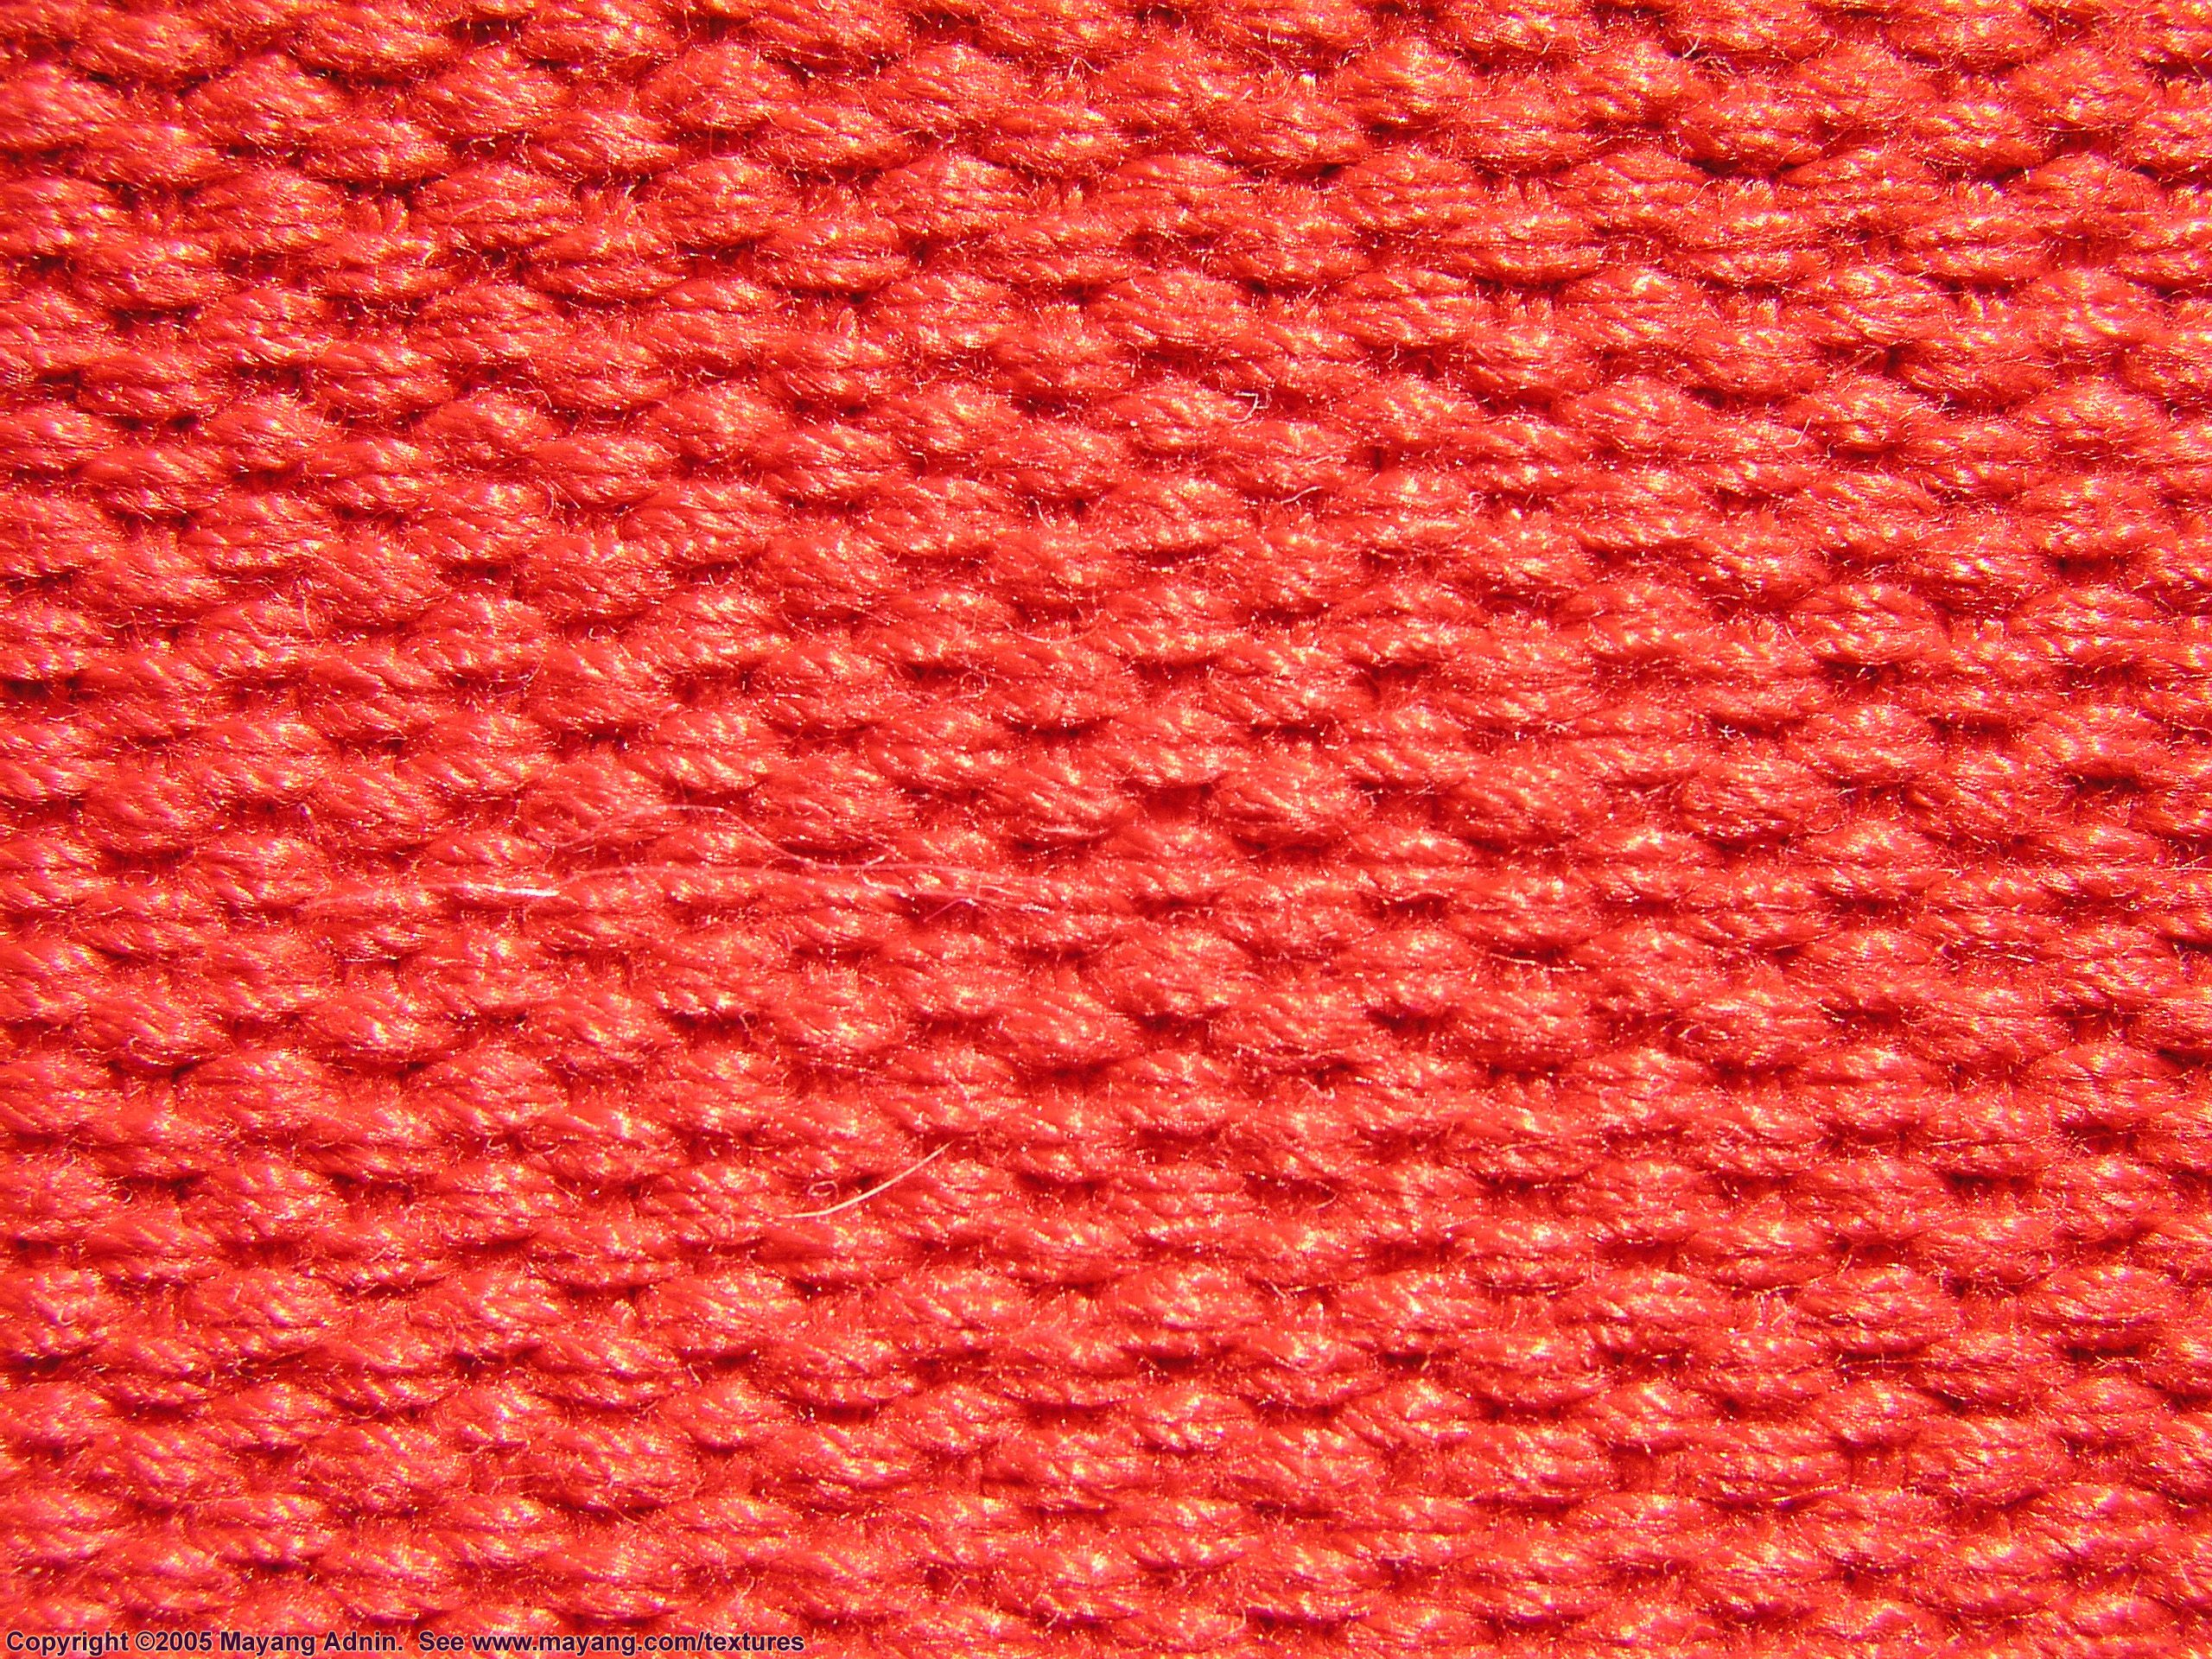 Red bed sheet texture - Undefined